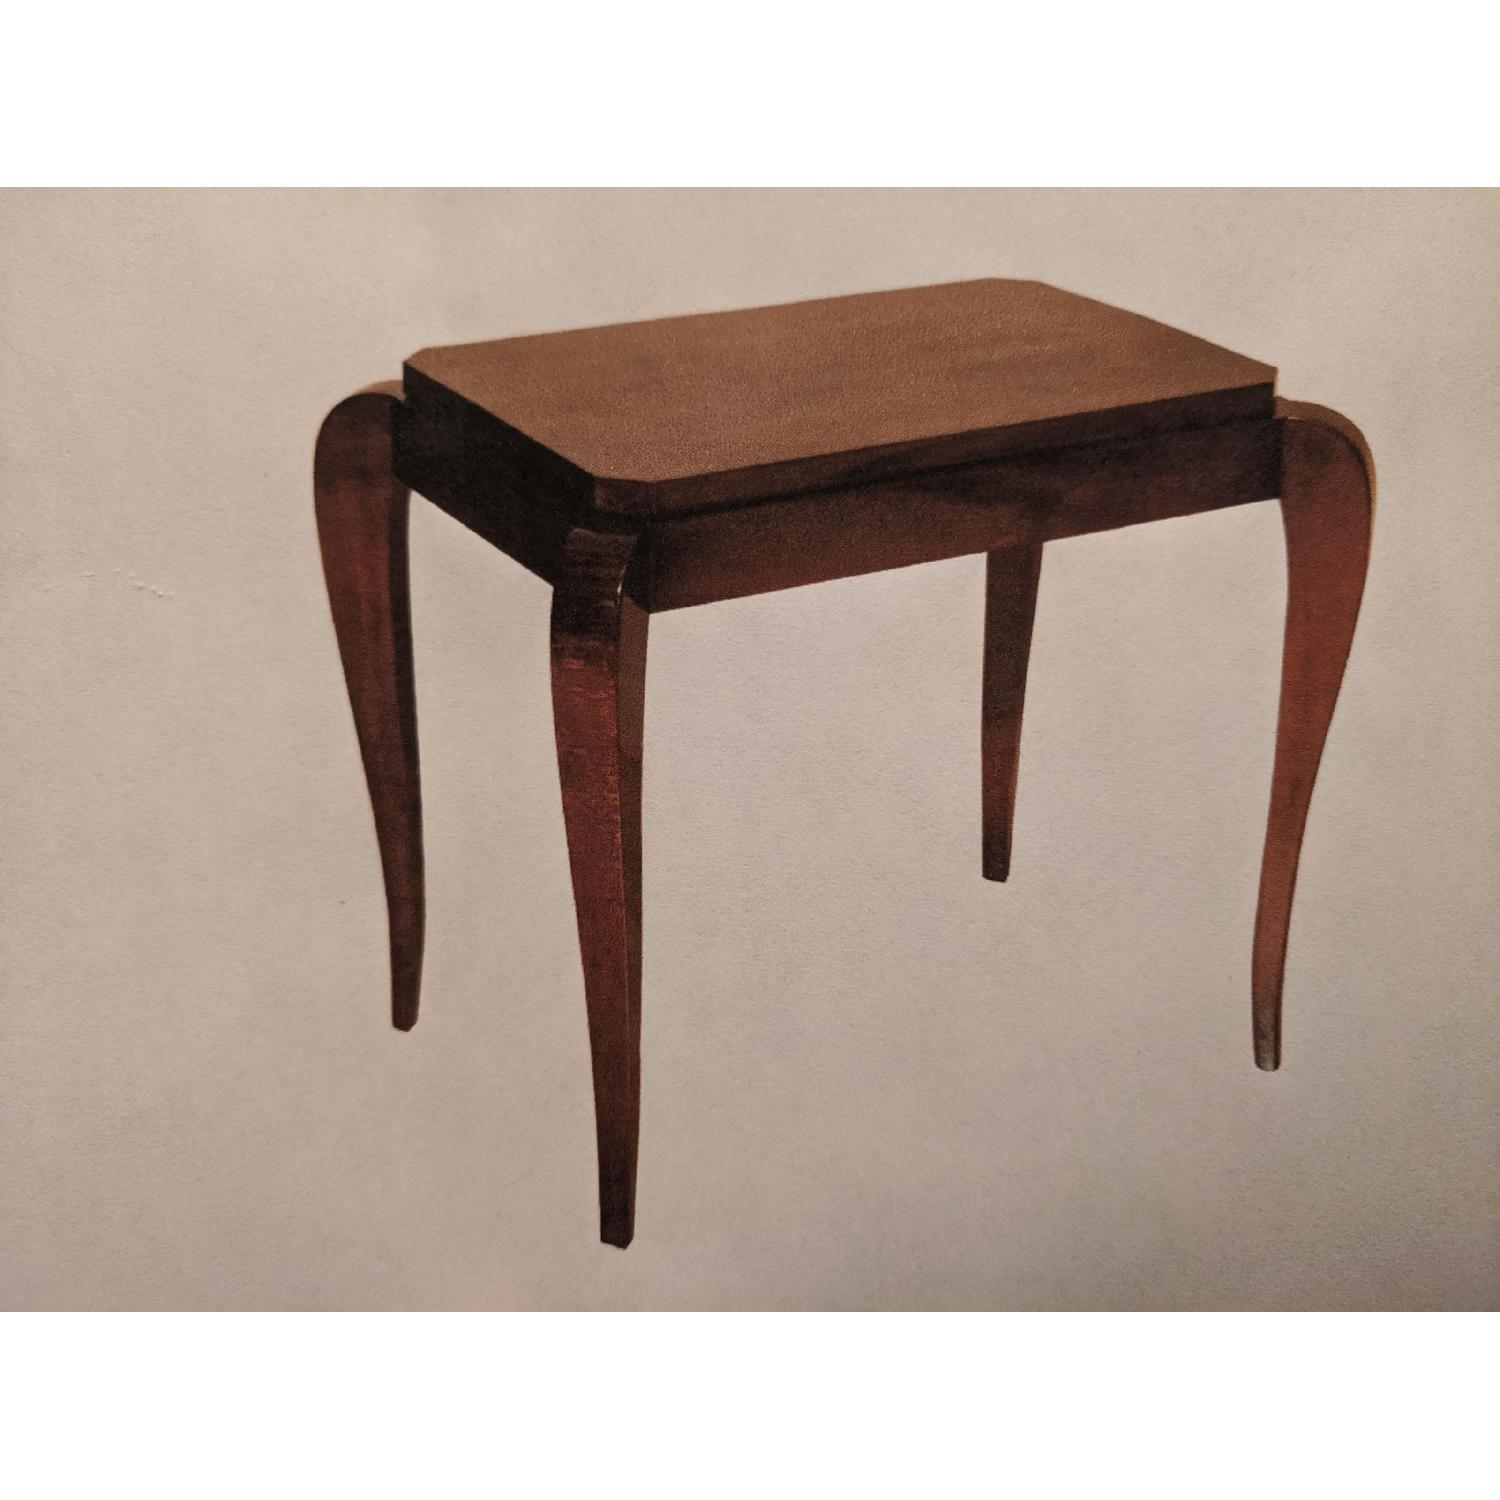 Gracious Art Deco Side Table w/ Tapered Legs - image-2